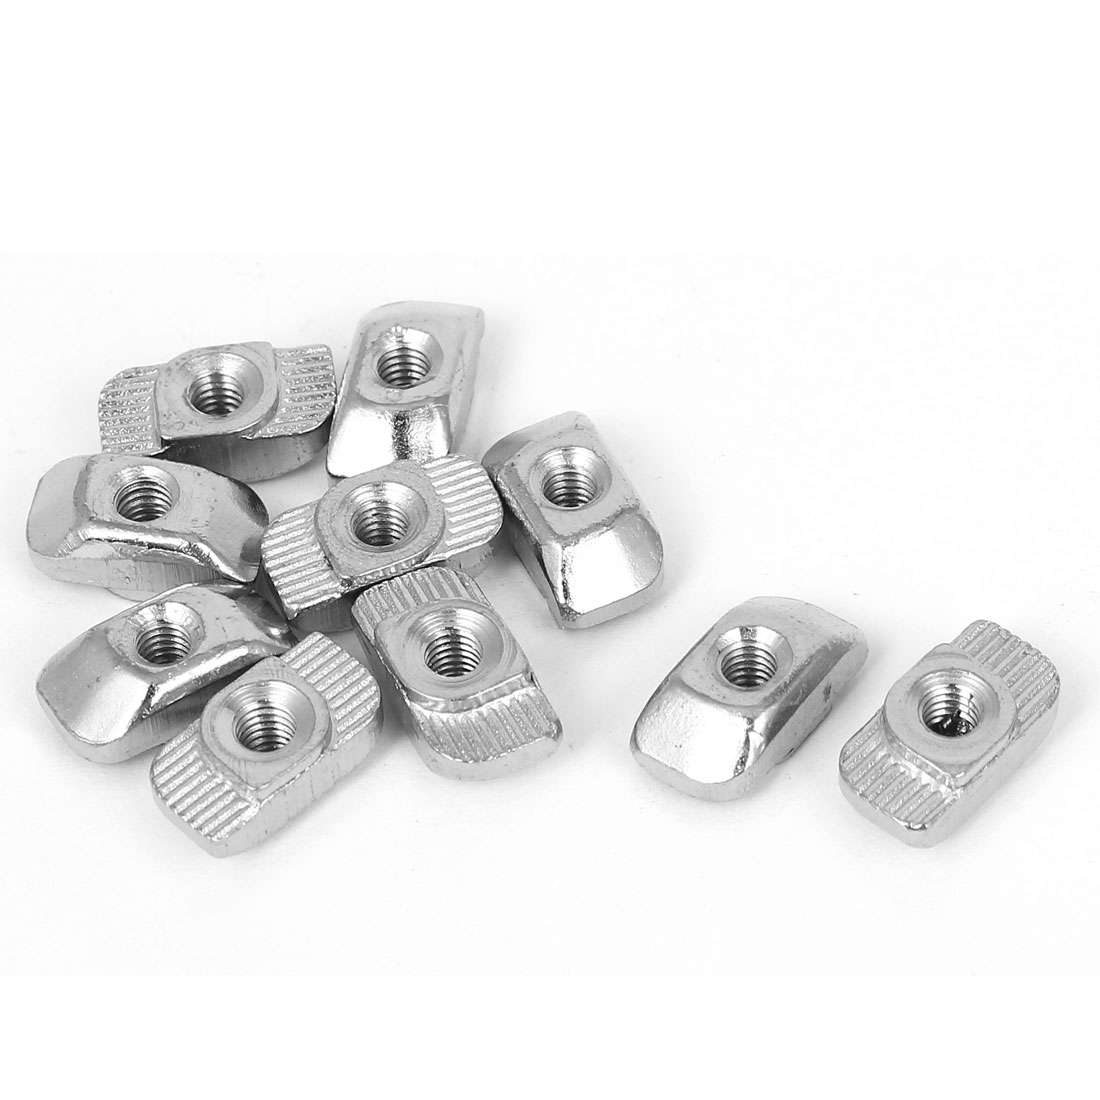 10pcs M4 Hammer Head T Slot Nuts Drop in T-Nuts for 30 Series Aluminum Profiles